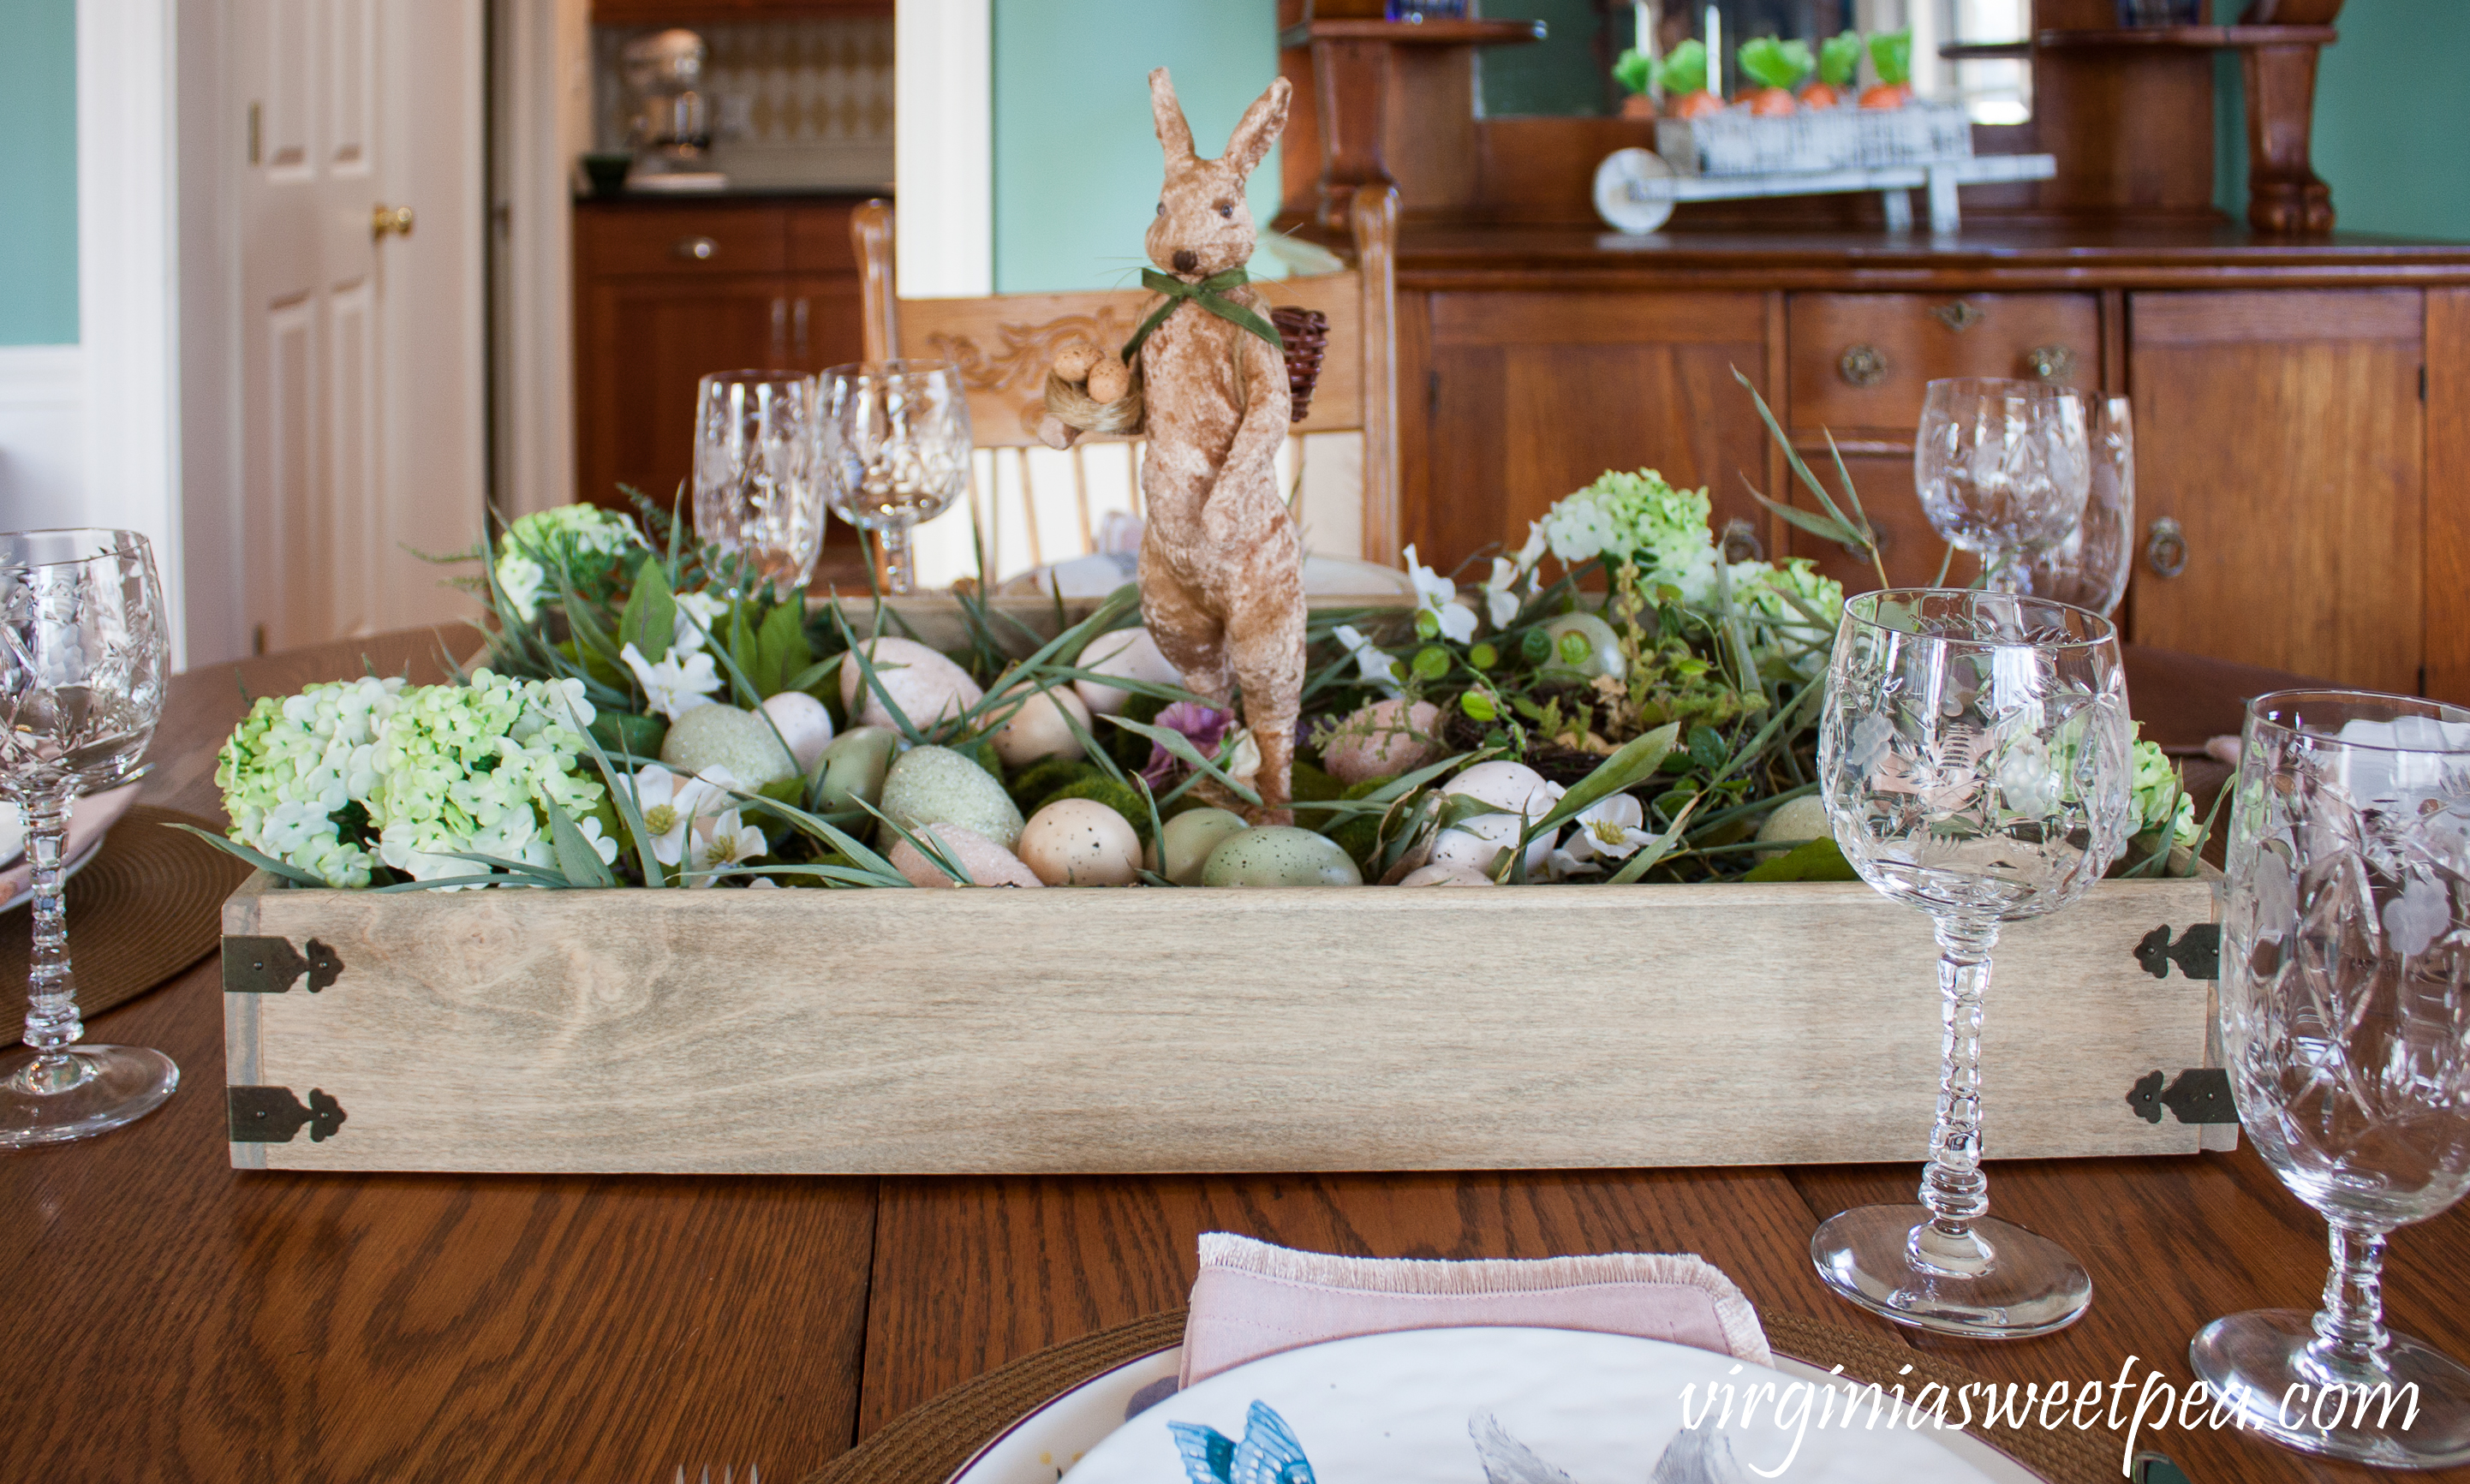 How to for making a farmhouse style Easter centerpiece #easter #eastercenterpiece #eastertablescape #farmhouse #farmhousecenterpiece #farmhousetable #eastertable